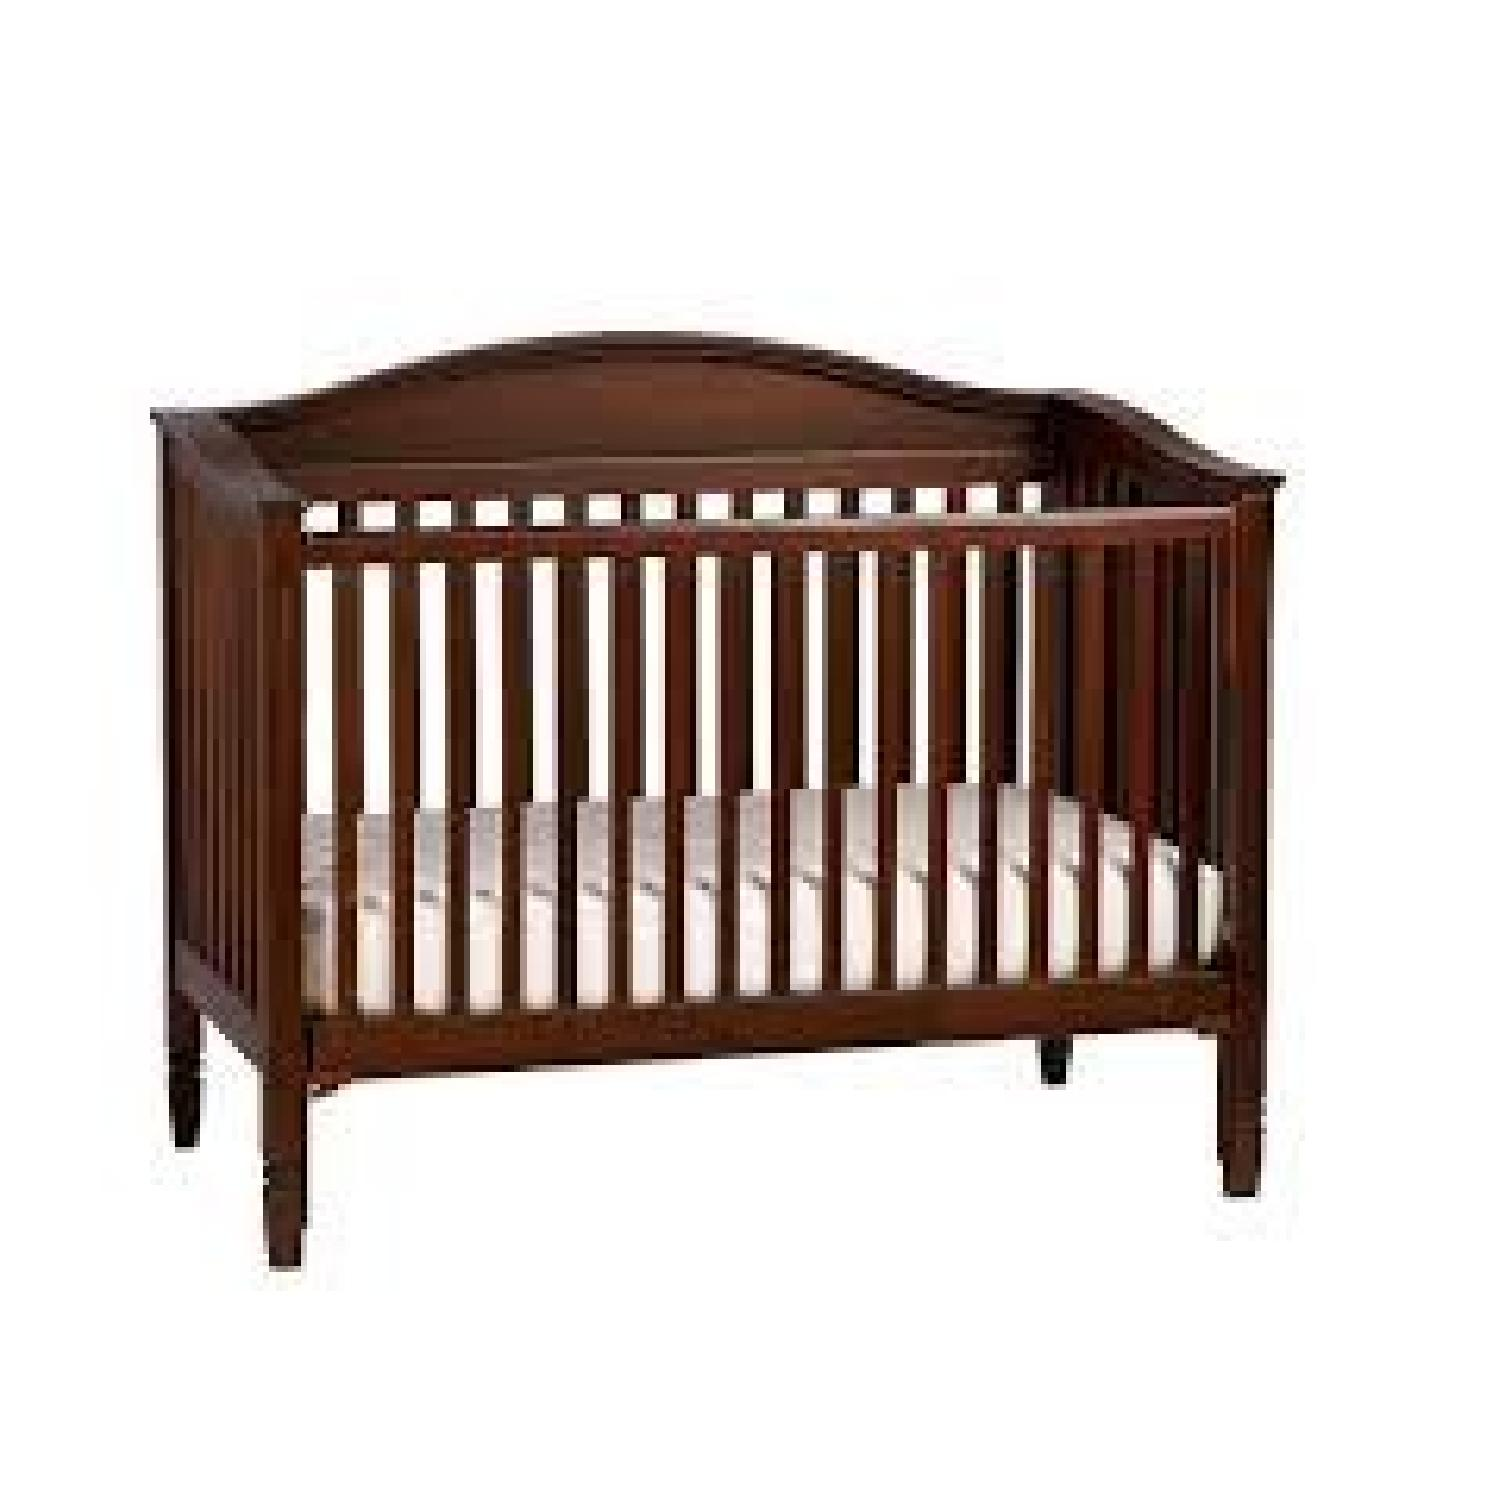 Pottery Barn Madison 3-in-1 Convertible Crib - image-0